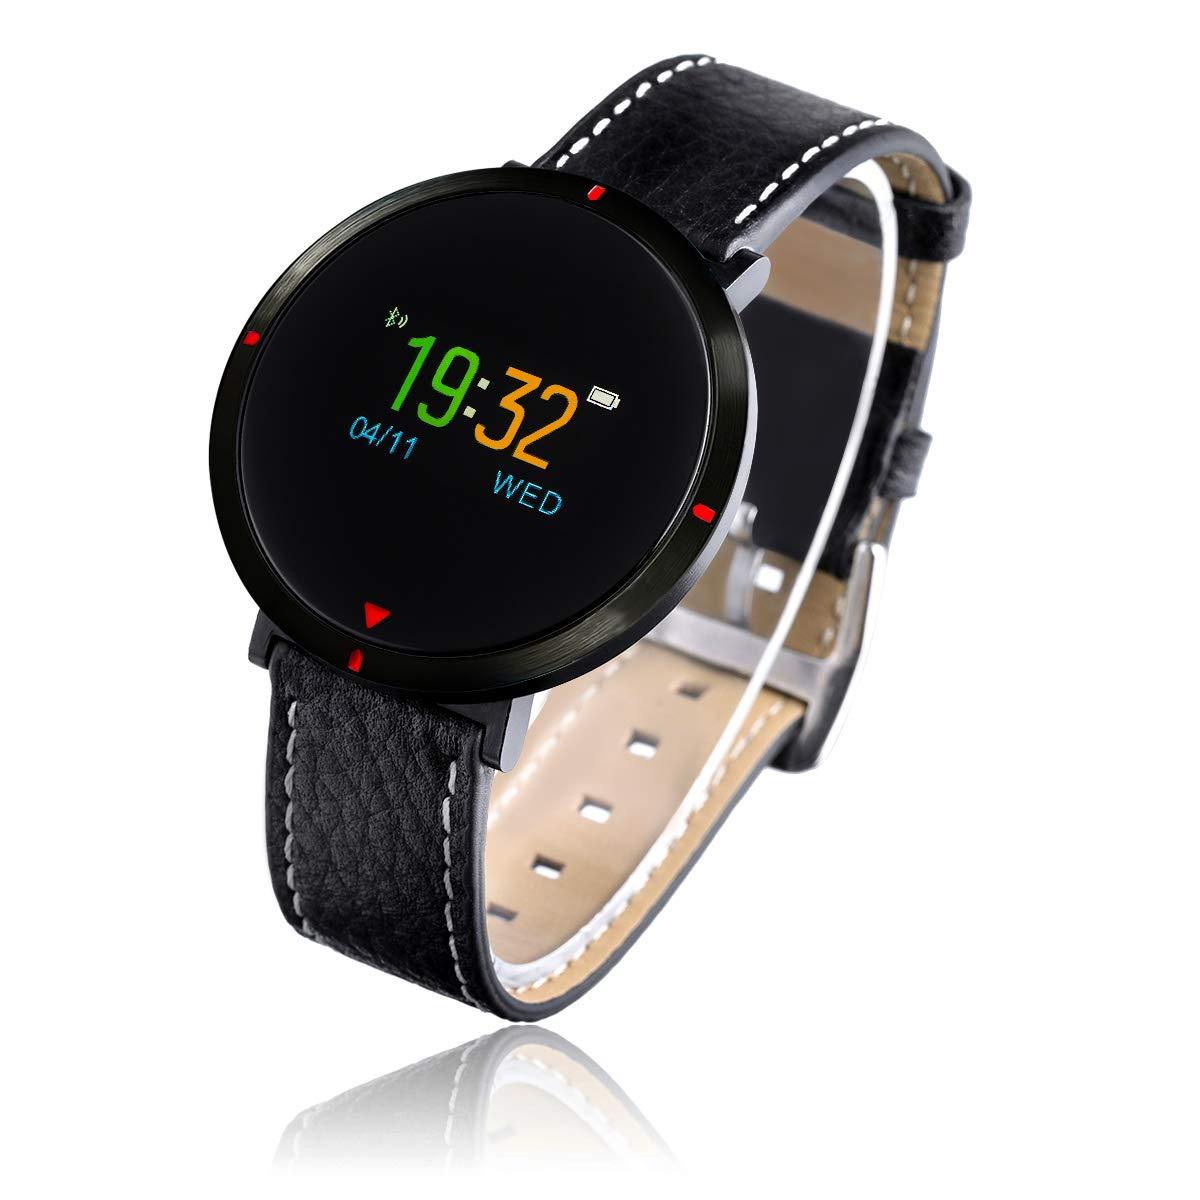 Smart Watch for Women, GOKOO S2 Girls Men Bluetooth Waterproof Leather Touchscreen Round Smartwatch with Heart Rate Blood Pressure Sleep Monitor Notifications for iPhones and Android Phones - Black